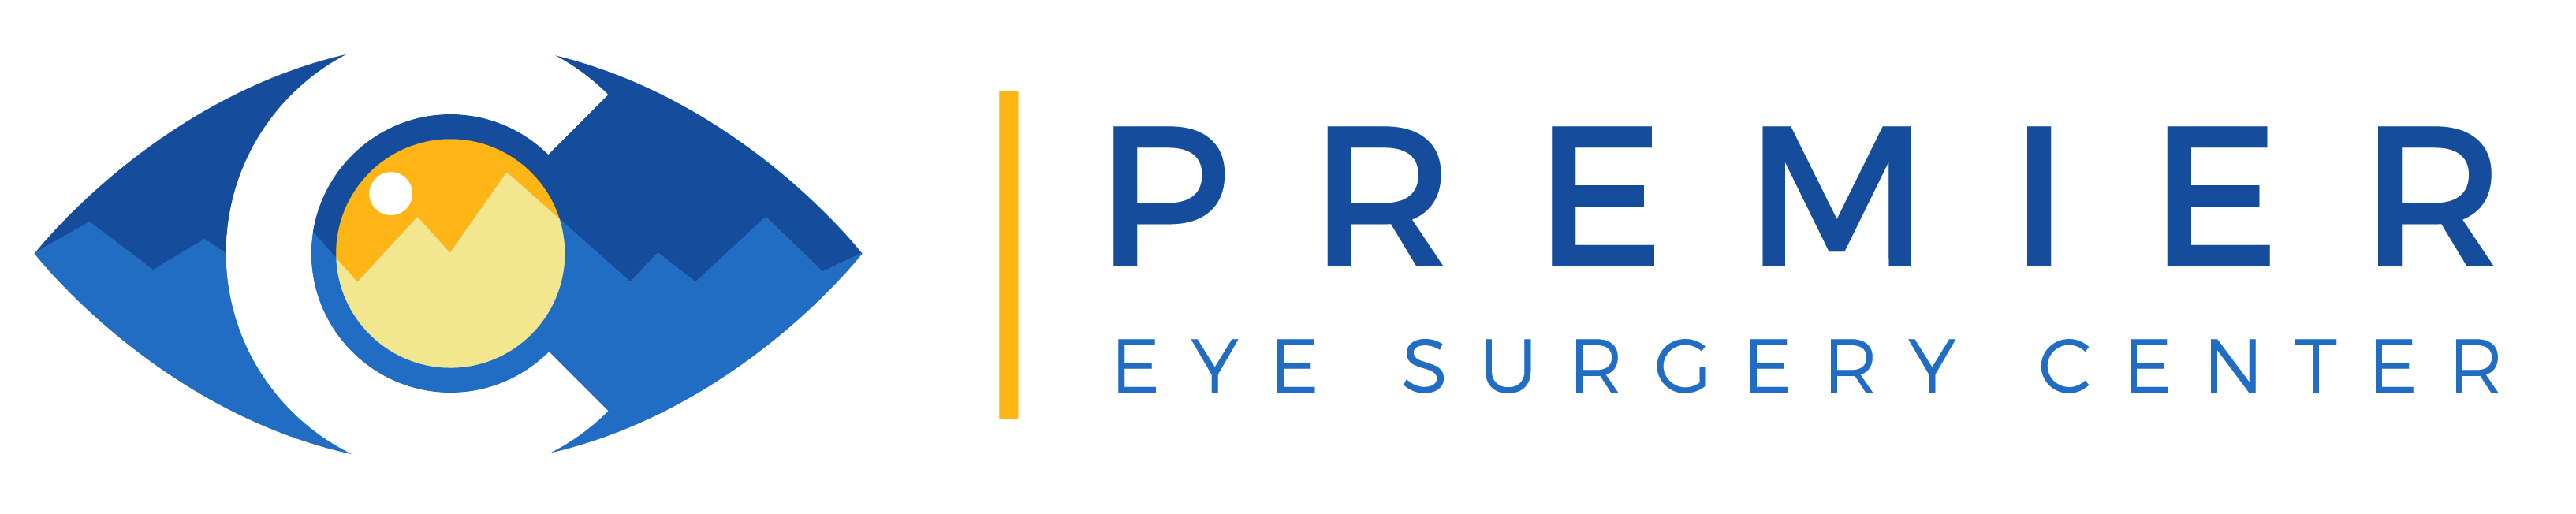 Premier Eye Surgery Center of Colorado - Jen